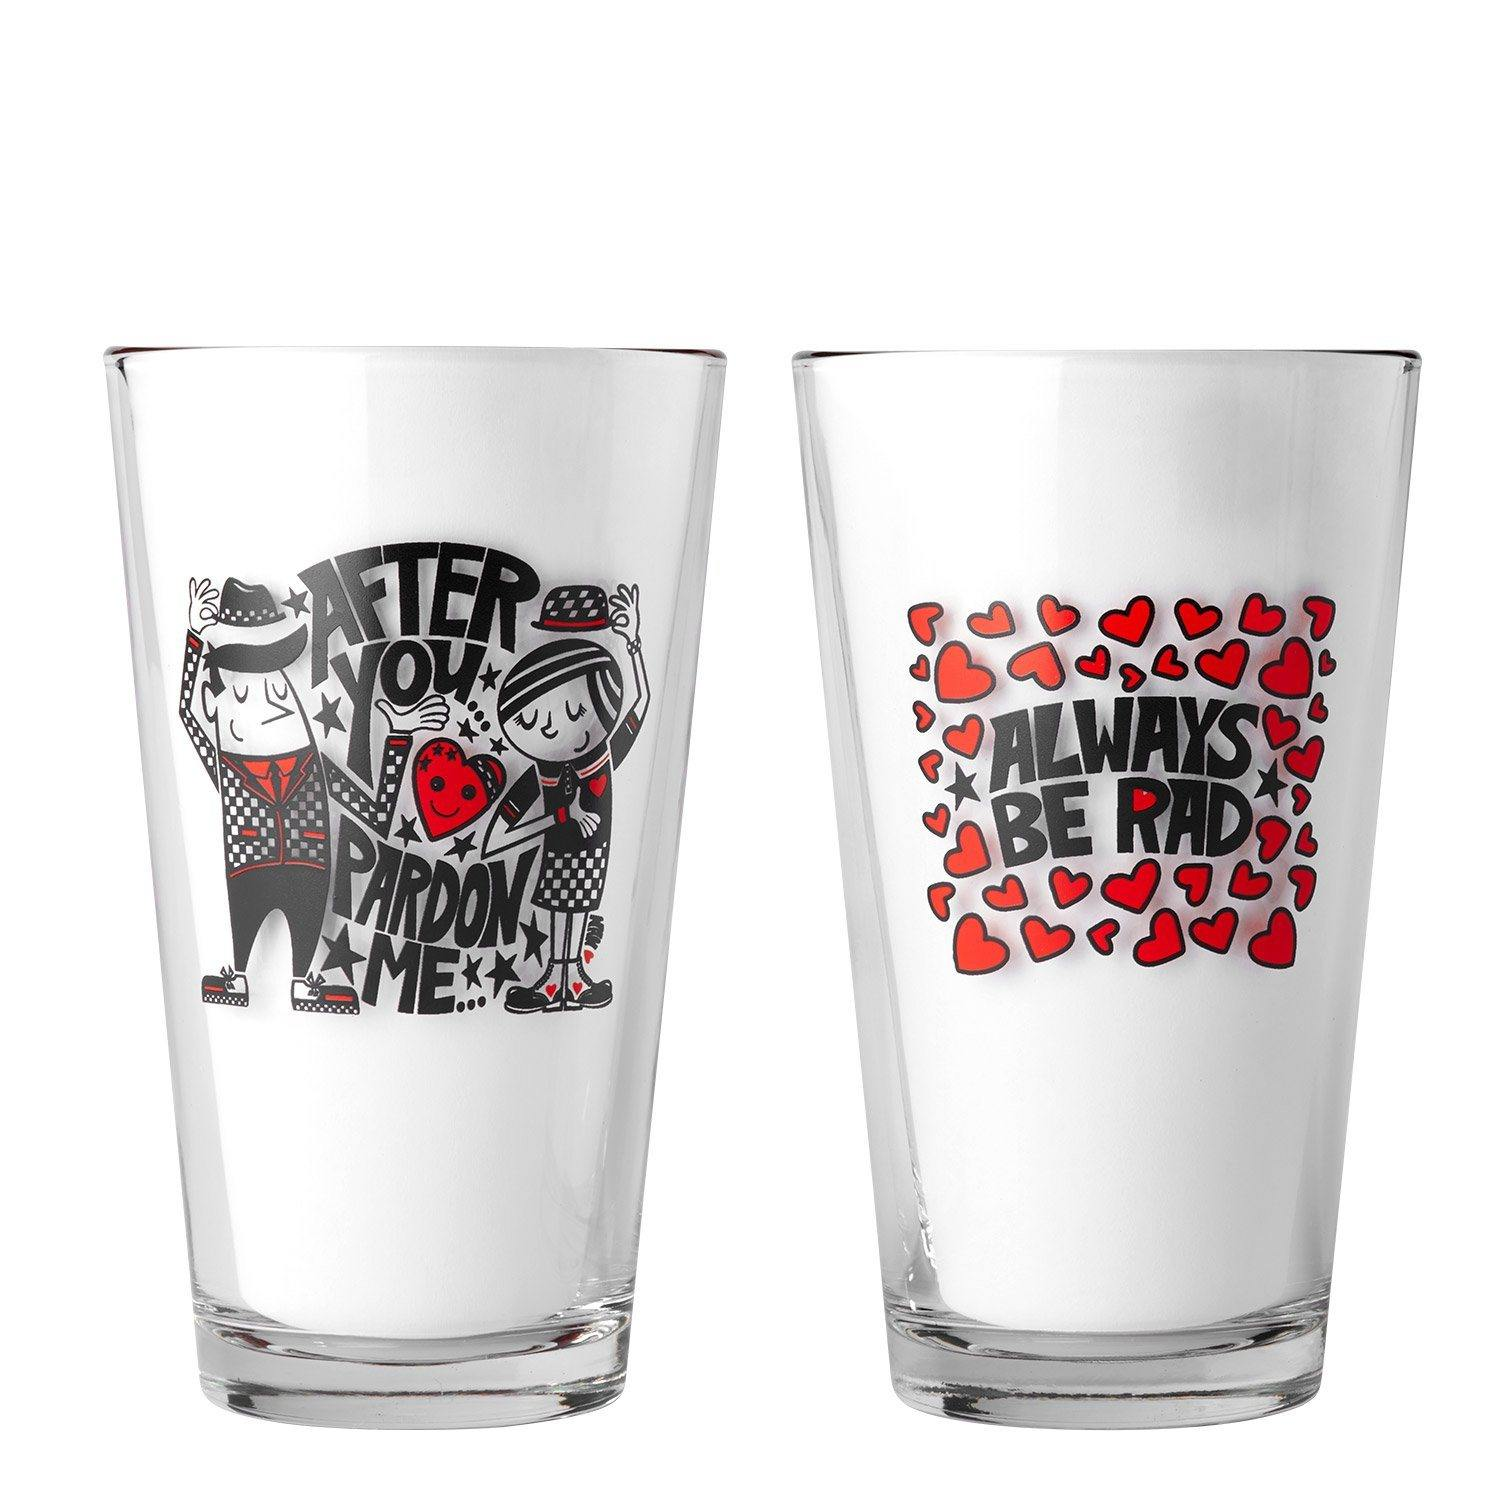 After You/Pardon Me / Always Be Rad- Pint Glass Set | Fine Art and Limited Edition Prints | The Art Of Nan Coffey